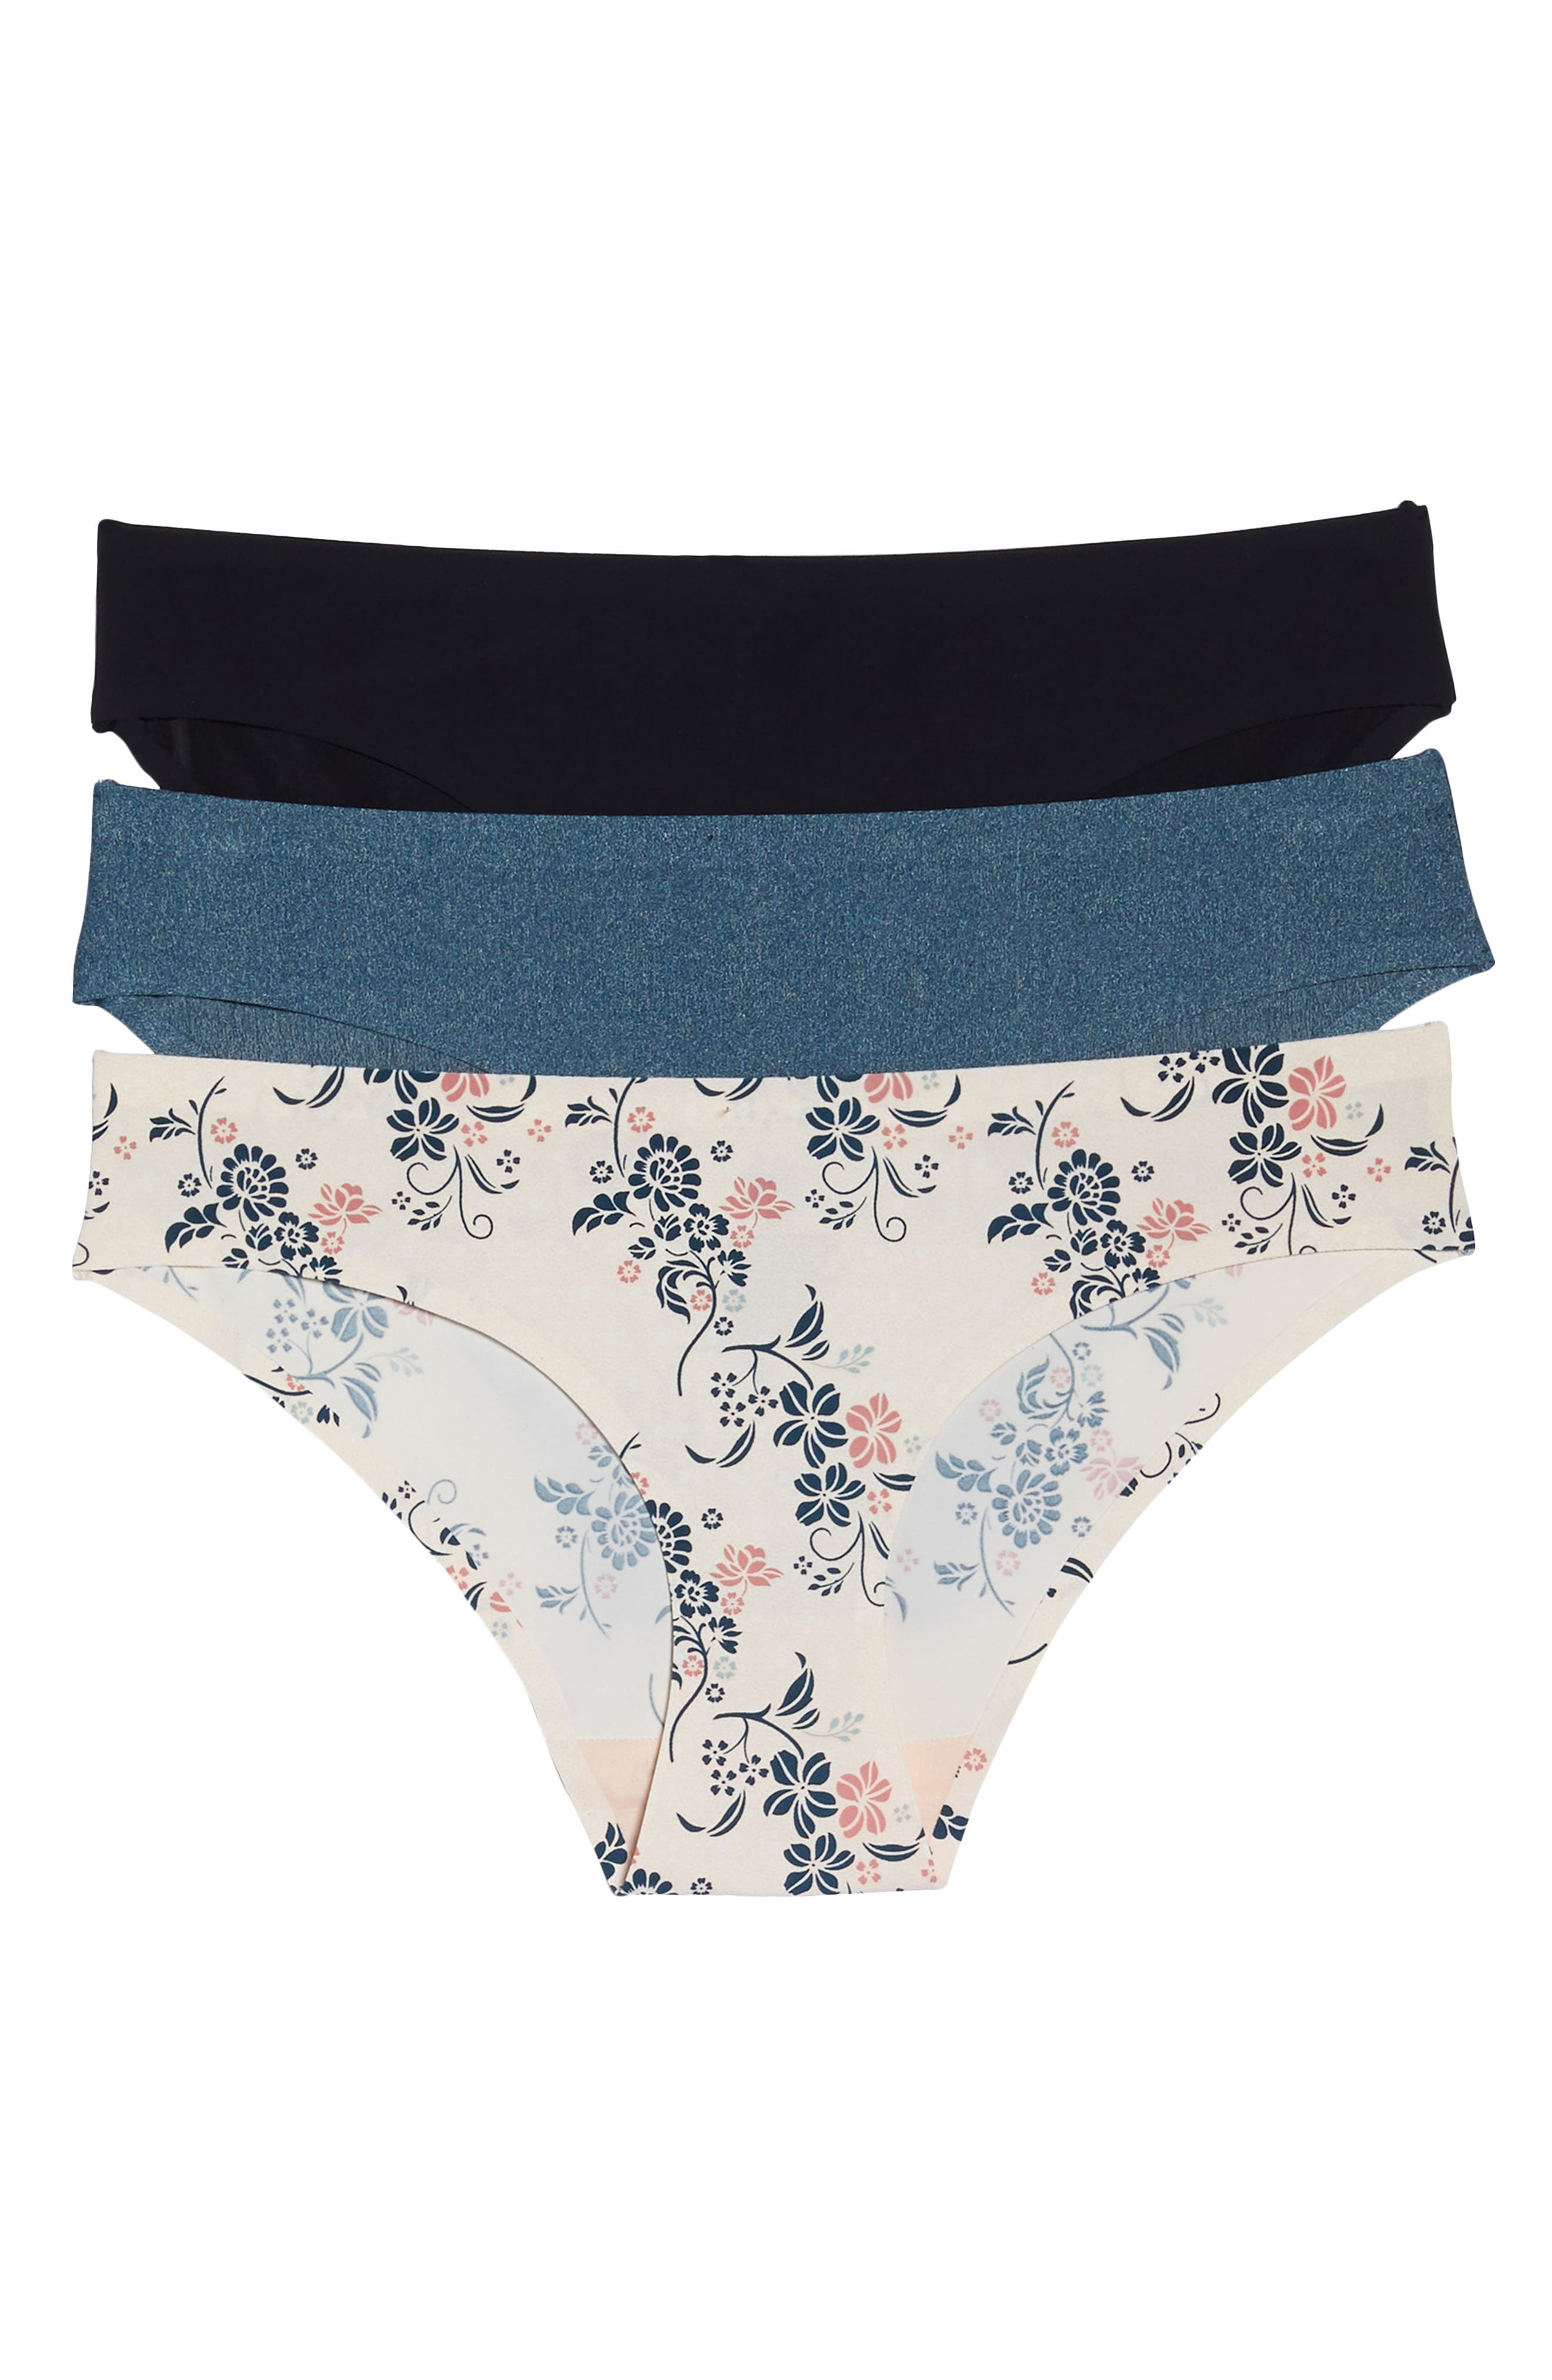 3-Pack Hipster Panties,                         Main,                         color, BLACK/ SIREN/ ENERGY FLORAL